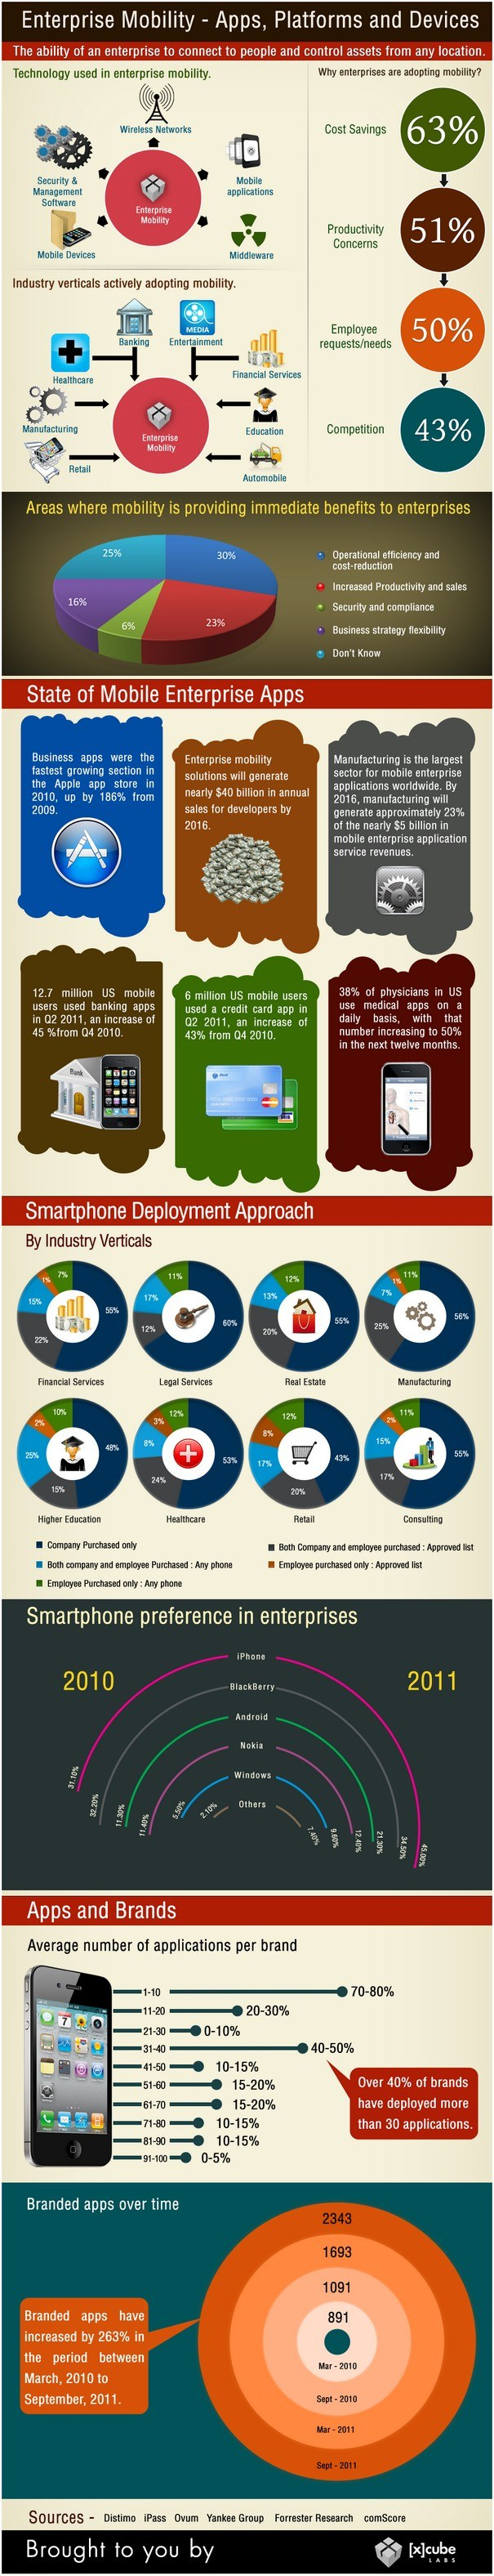 Enterprise Mobility Apps Platforms and Devices Infographic